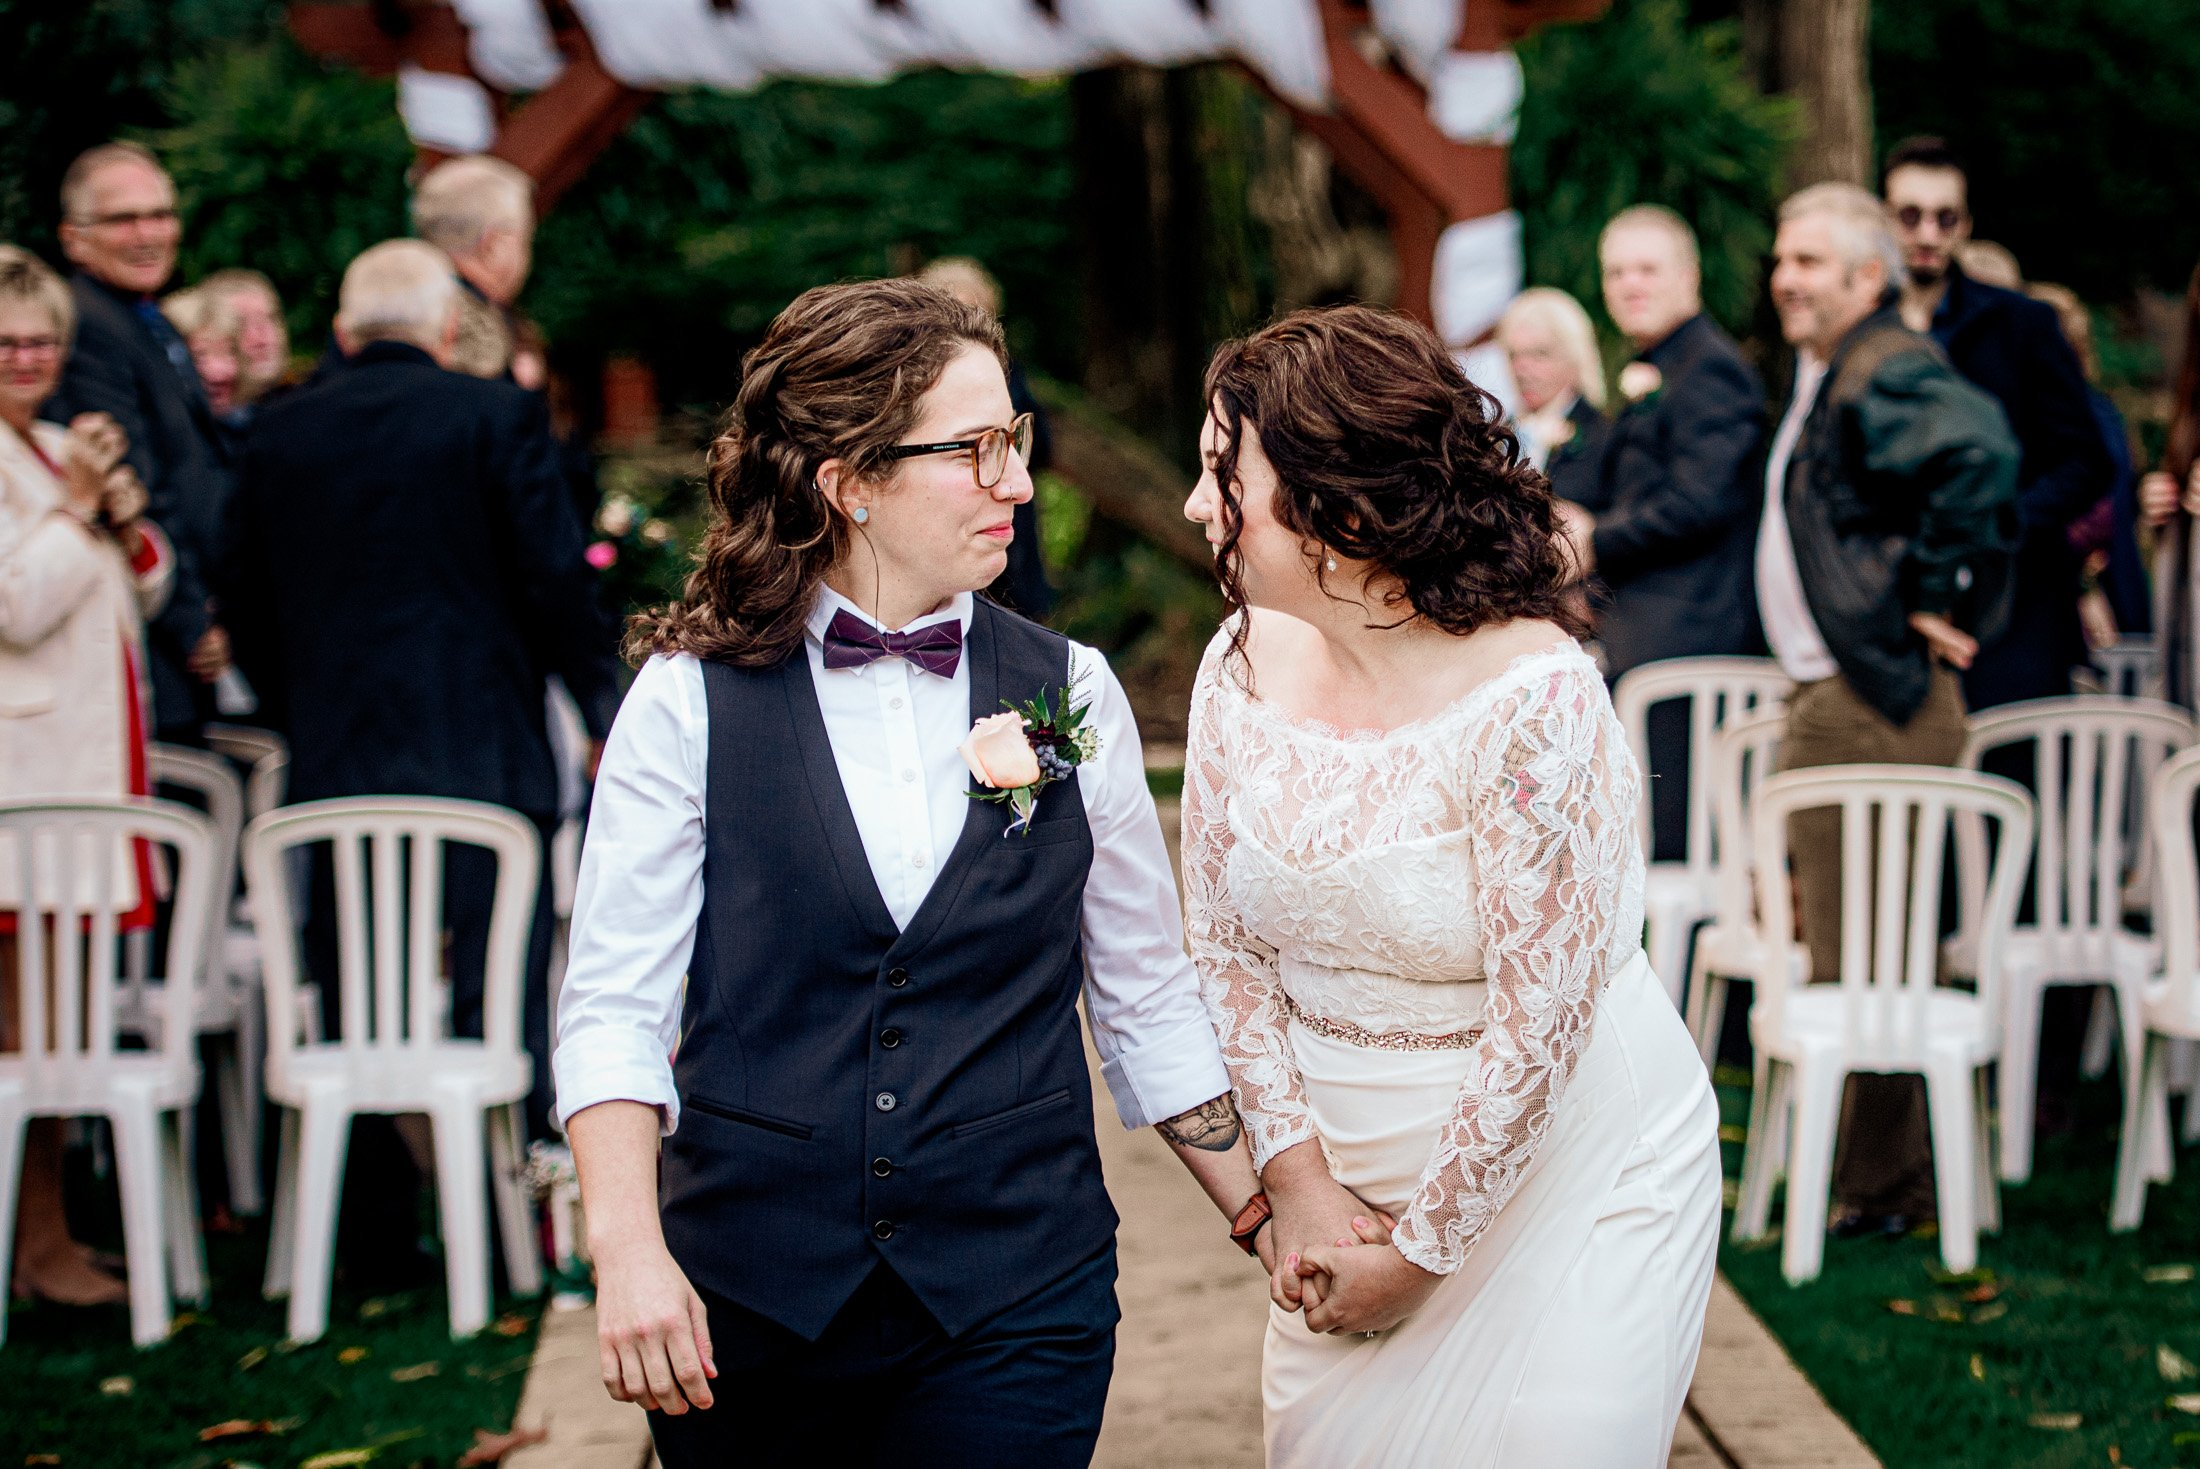 016 - lgbtq wedding photos